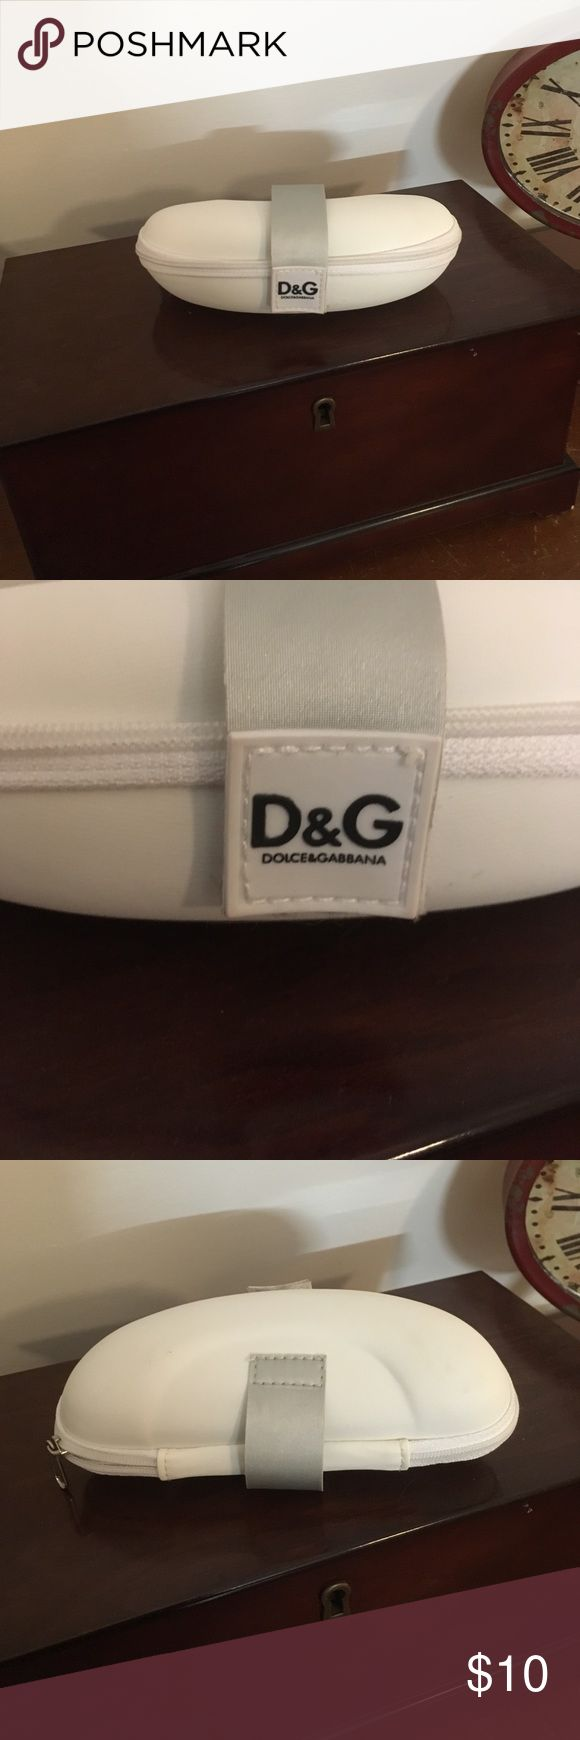 Dolce & Gabbana Eyewear Glasses Sunglasses Case Closes with zipper and has Velcro fastener which is still strong. No stains or other noted flaws with case. From a smoke free home. Dolce & Gabbana Accessories